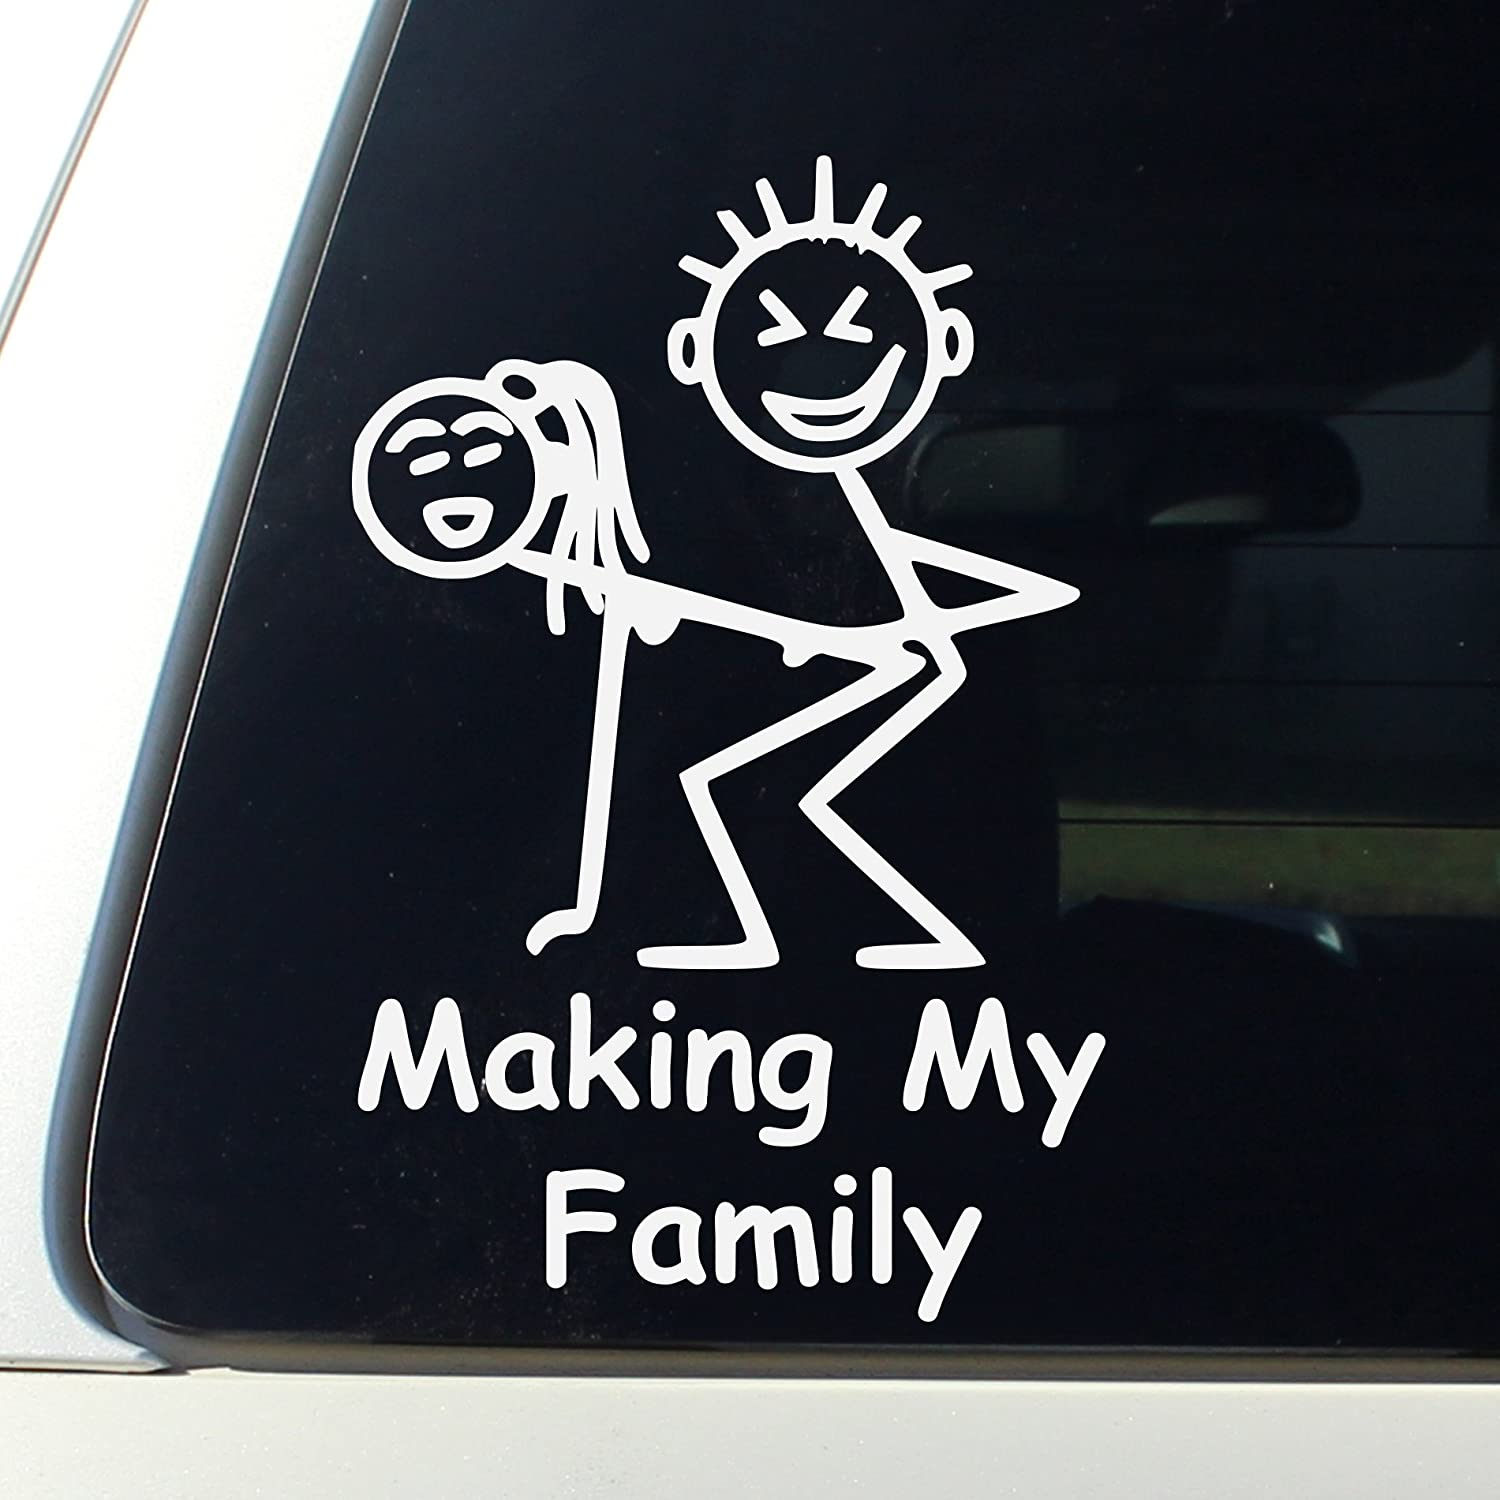 Making my family funny stick figure family decal bumper sticker window funny jeep stickers decals funny signs decals bumper stickers amazon canada